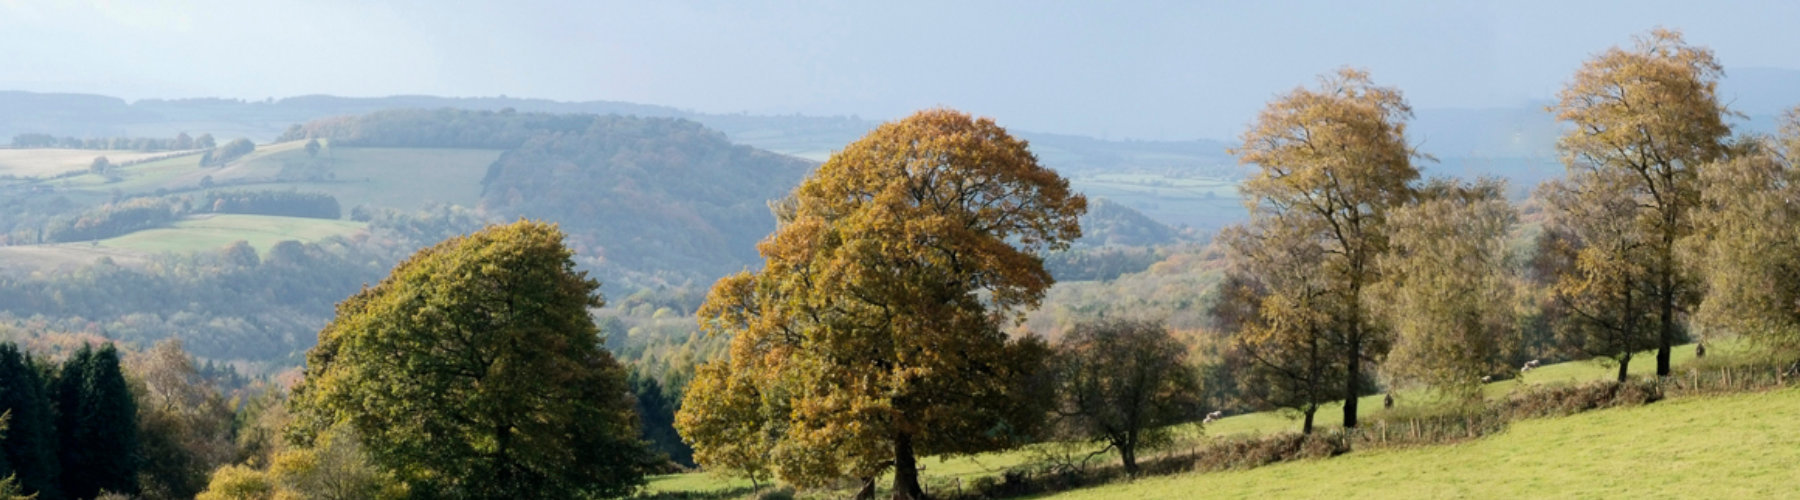 Other Activities in the Wye Valley - Spring Cottage Holidays